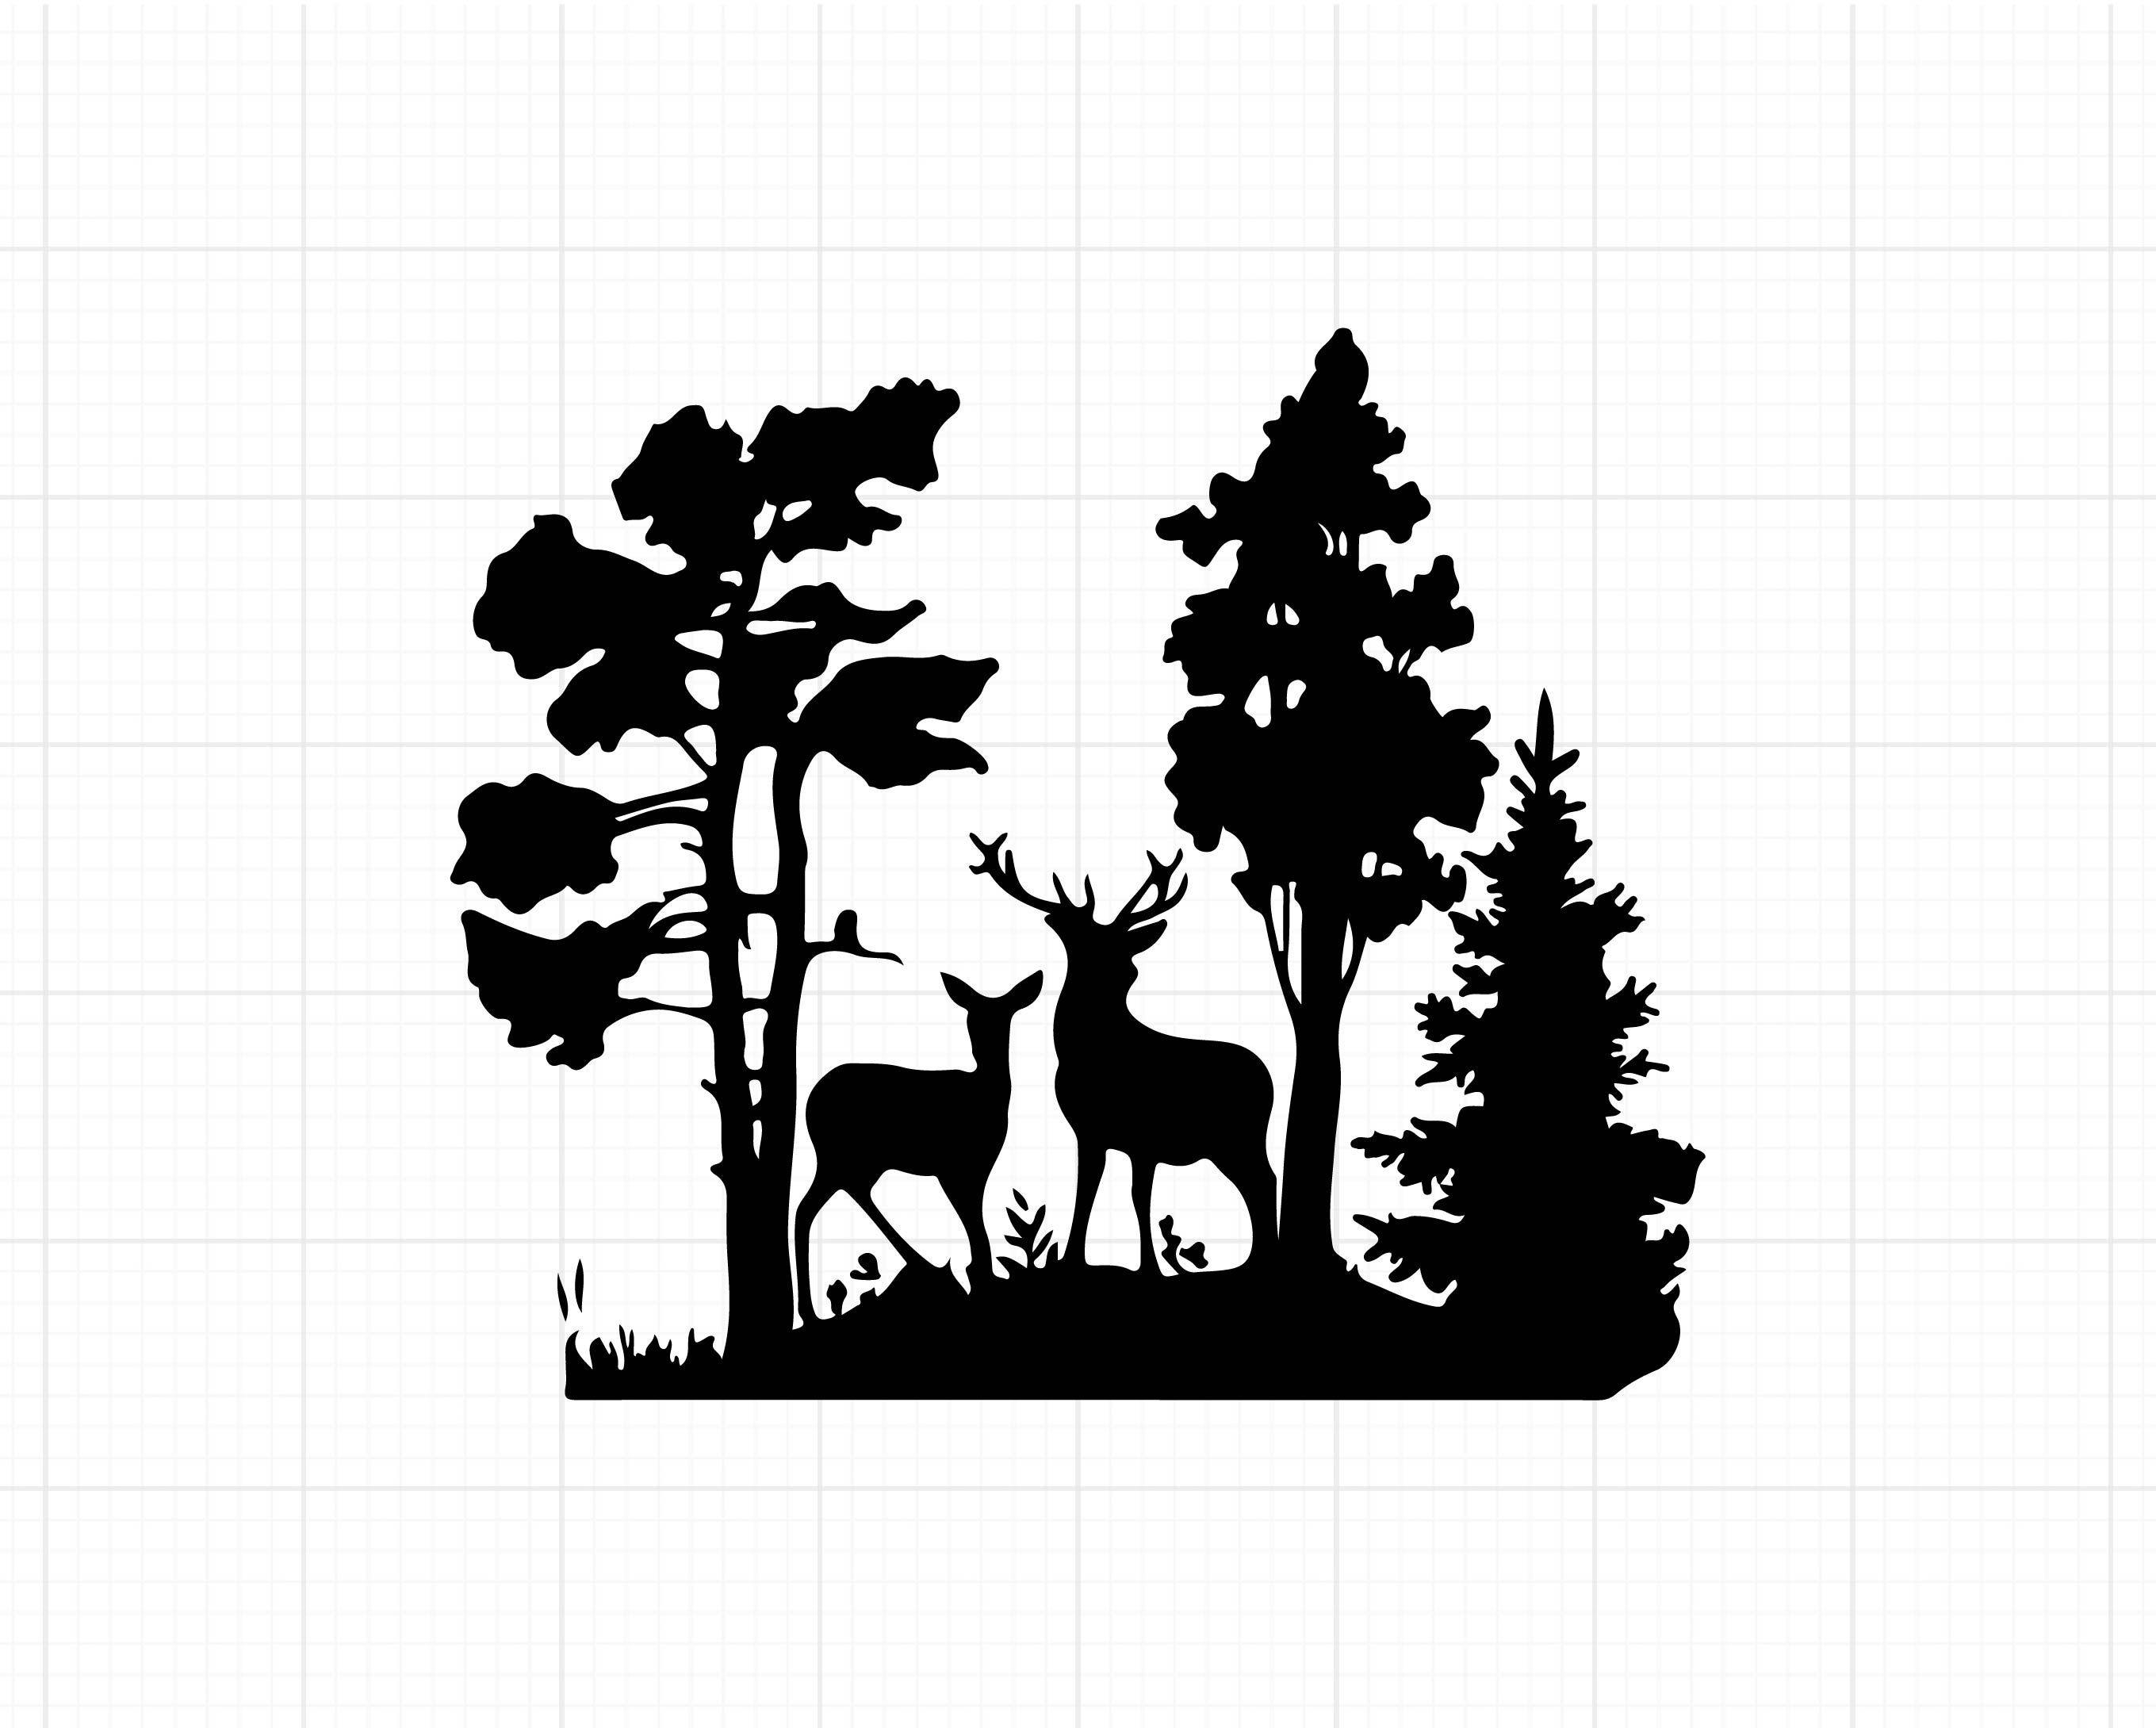 Deer Svg Files Forest Deer Svg Deer Silhouette Clipart For Cricut Vector Graphics In 2020 Deer Silhouette Vector Graphics Deer Art